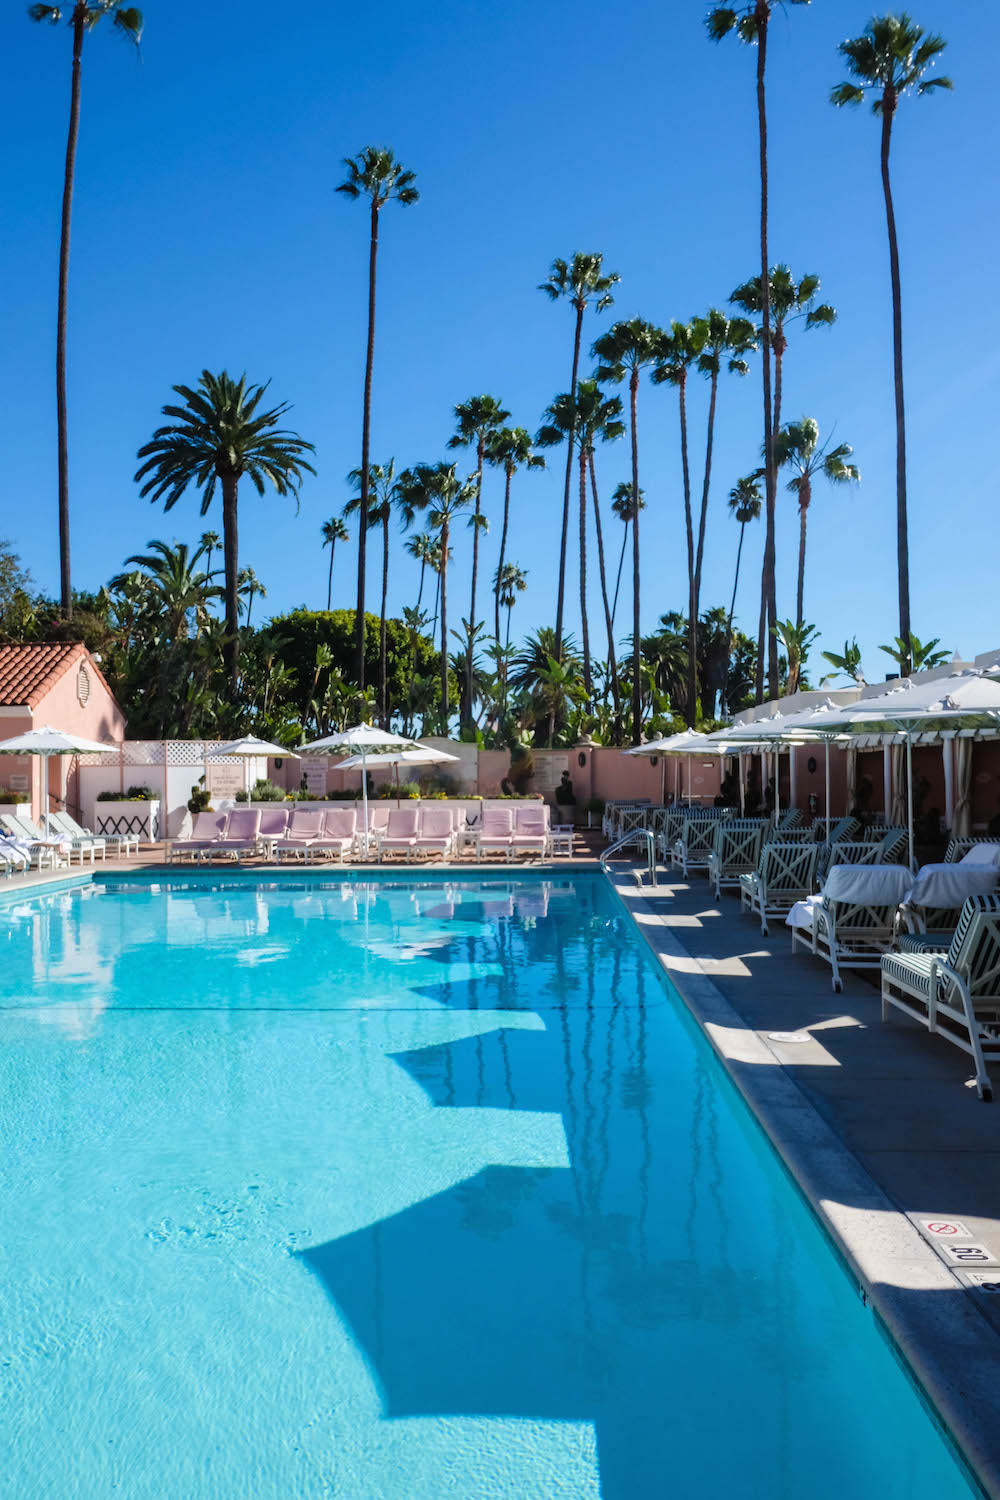 Beverly Hills Hotel pool area